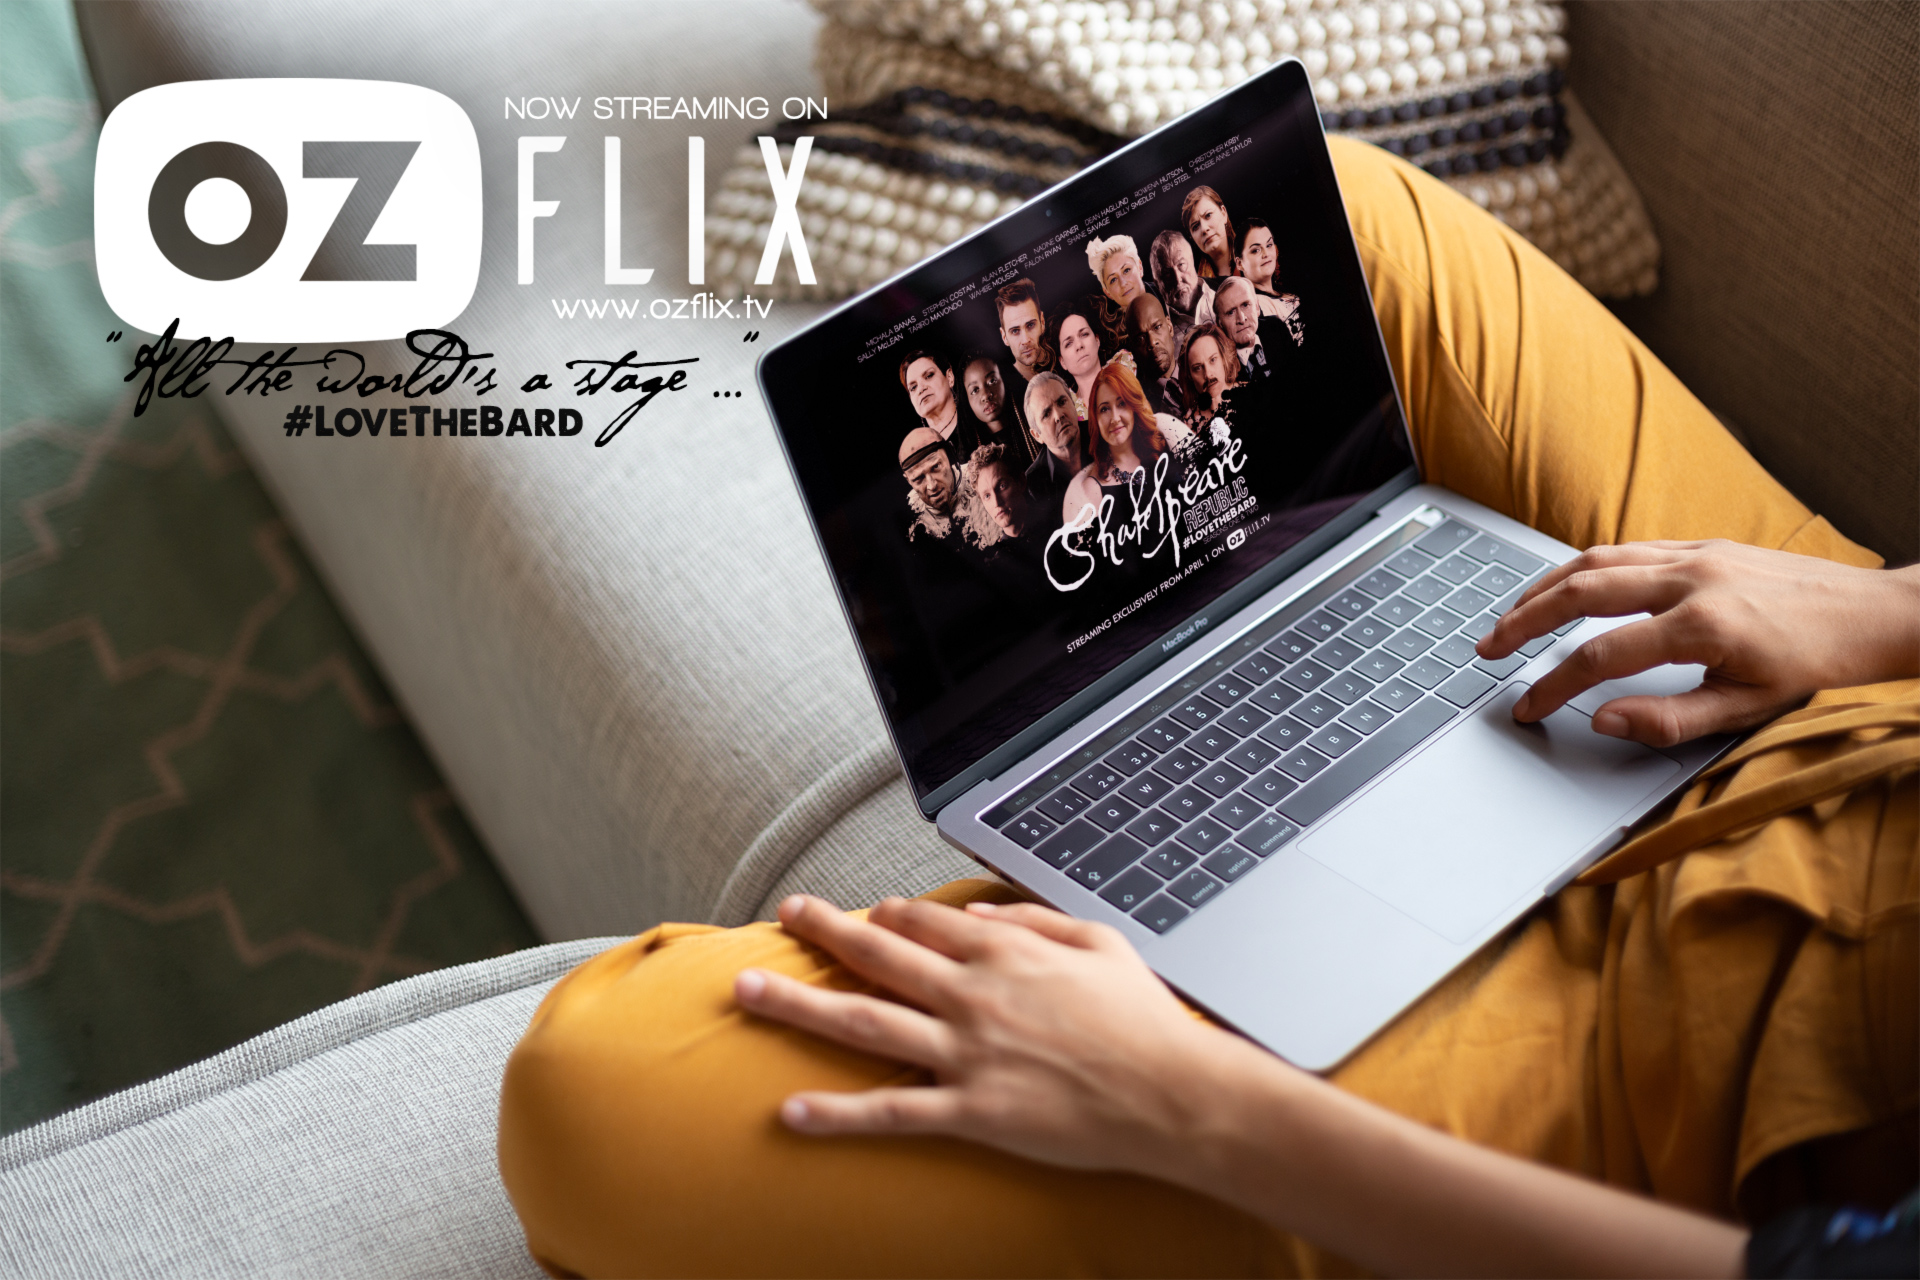 Shakespeare Republic has the highest viewing figures of any launch on the Ozflix platform!